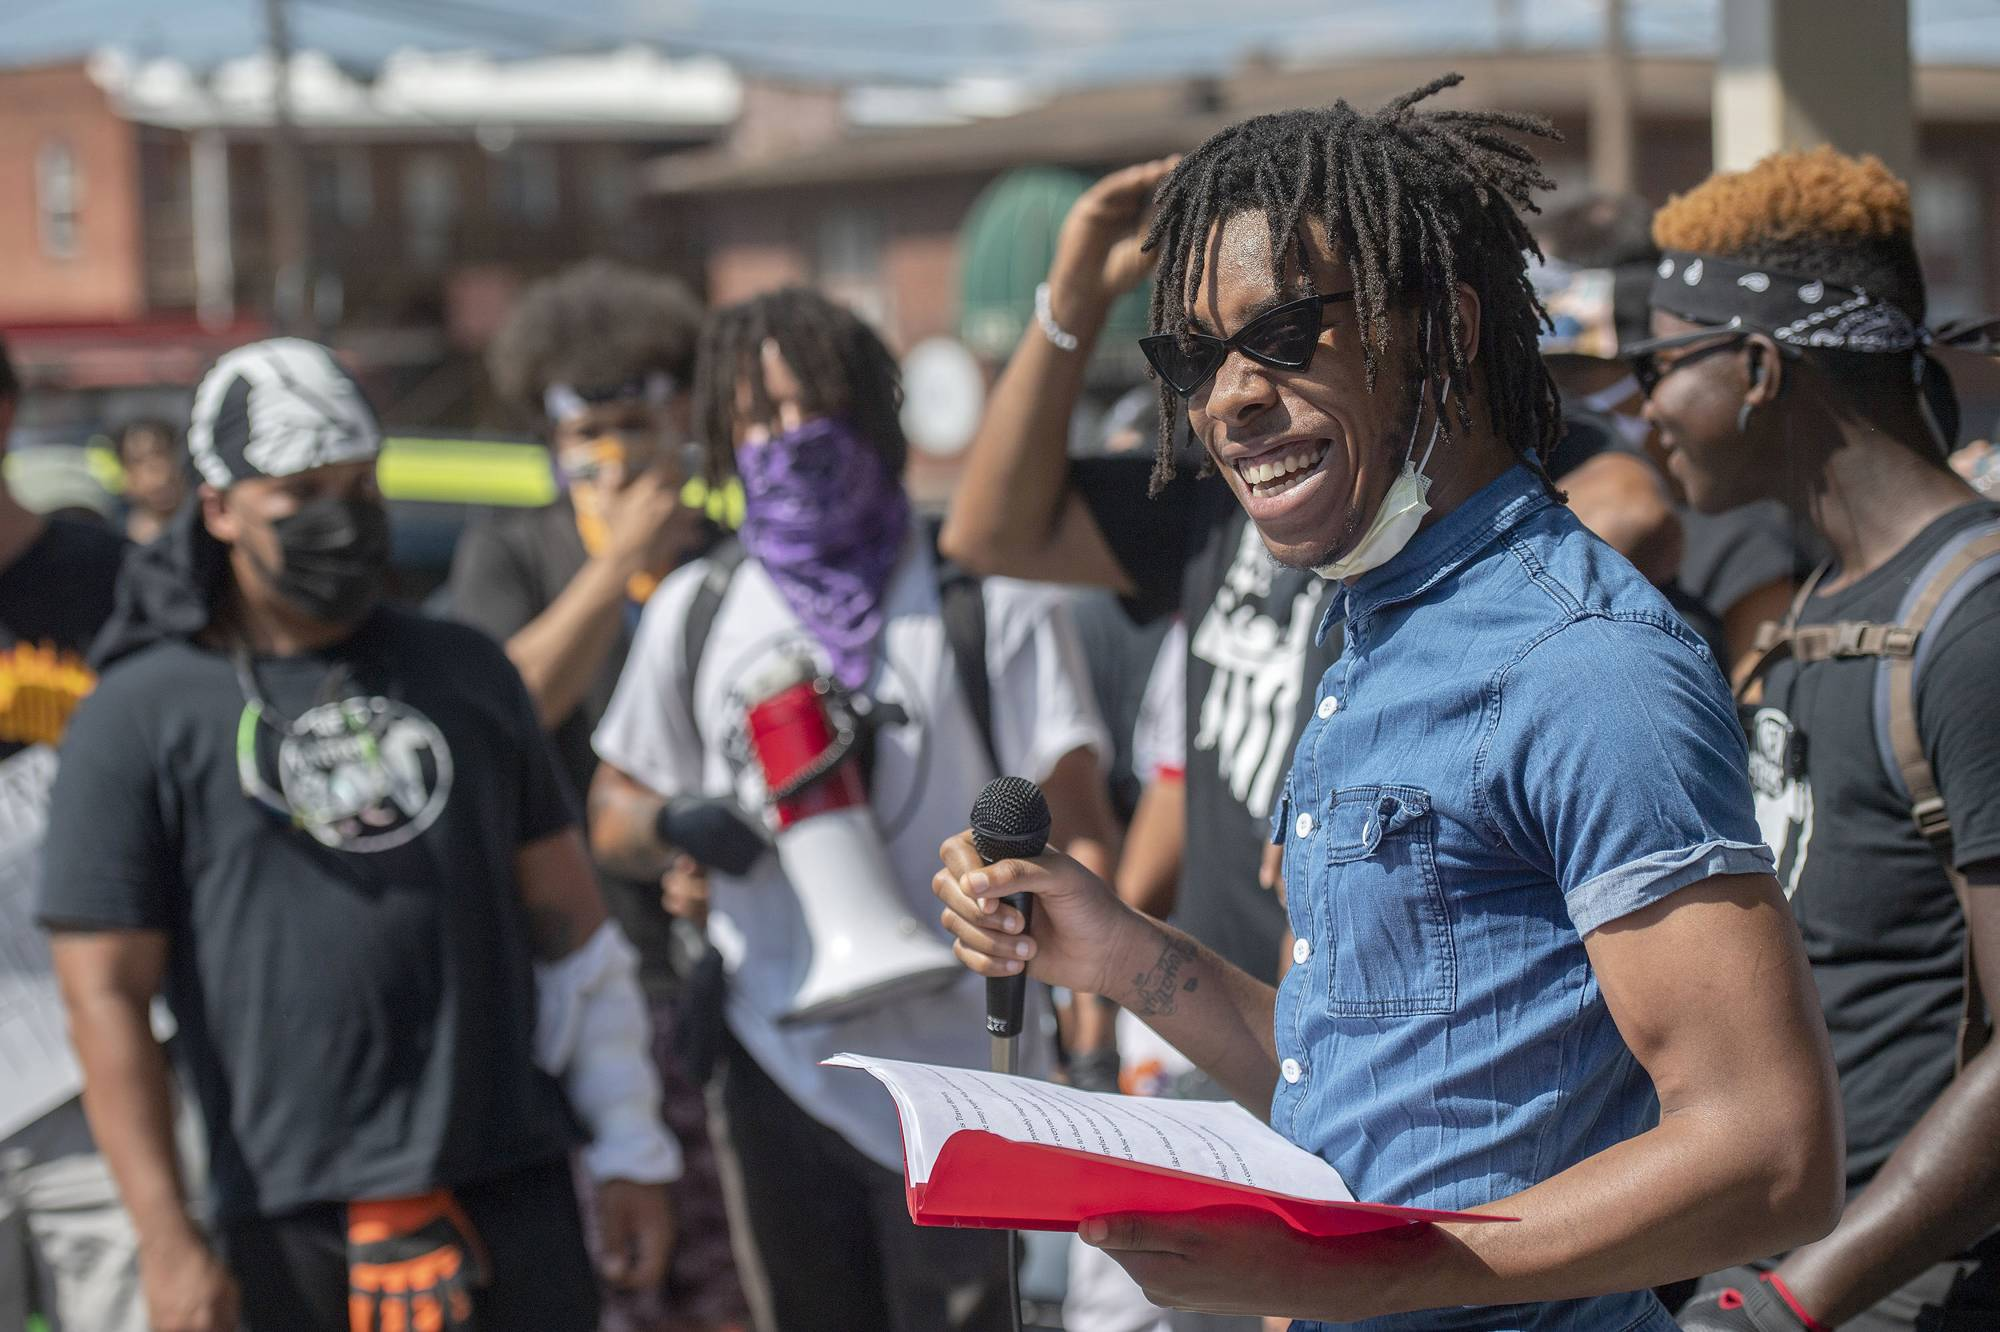 A man speaks to a crowd before a Black Lives Matter rally march in Marion, Virginia, on July 3. | ANDRE TEAGUE / BRISTOL HERALD COURIER / VIA AP